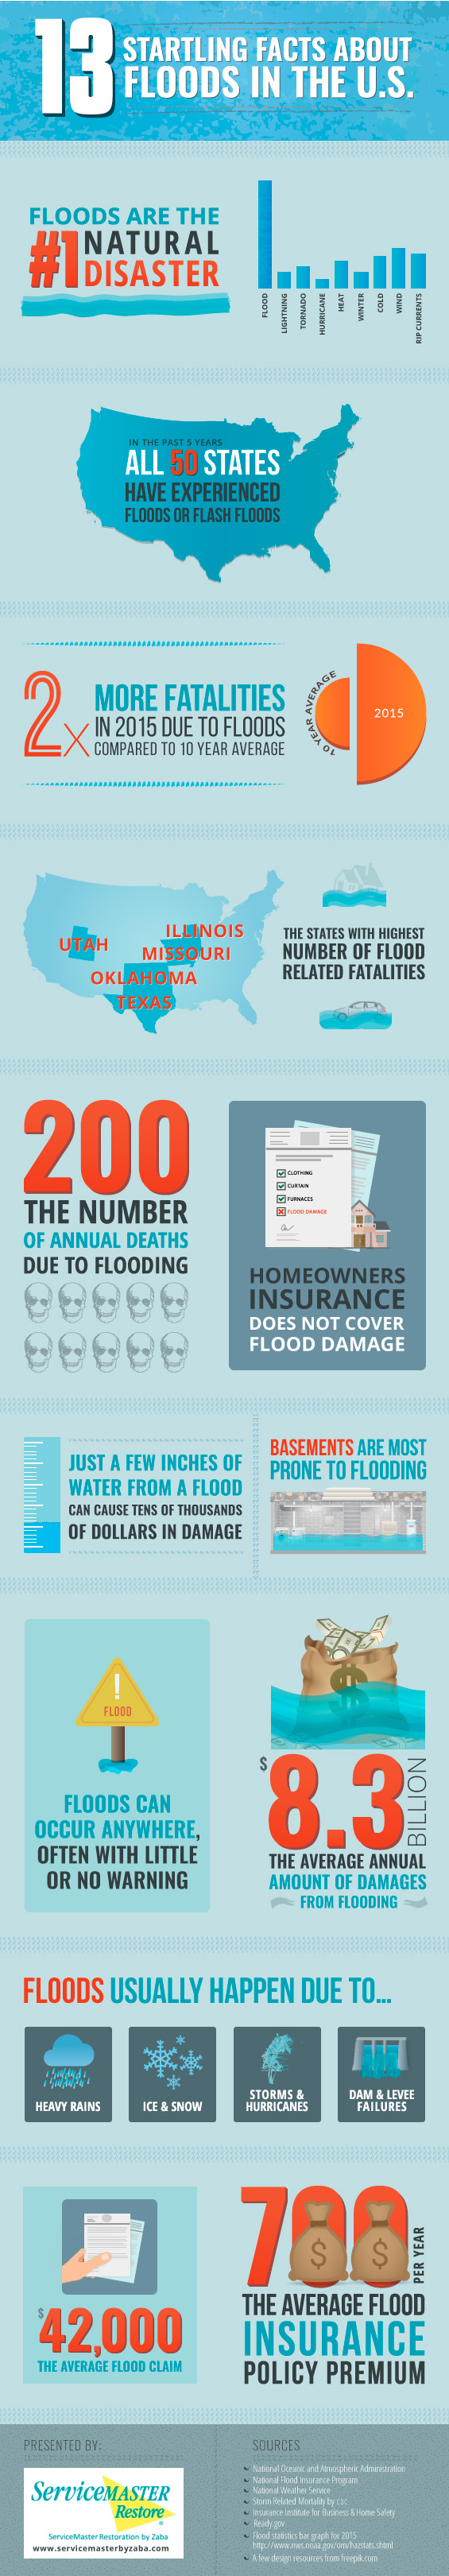 startling facts about flood